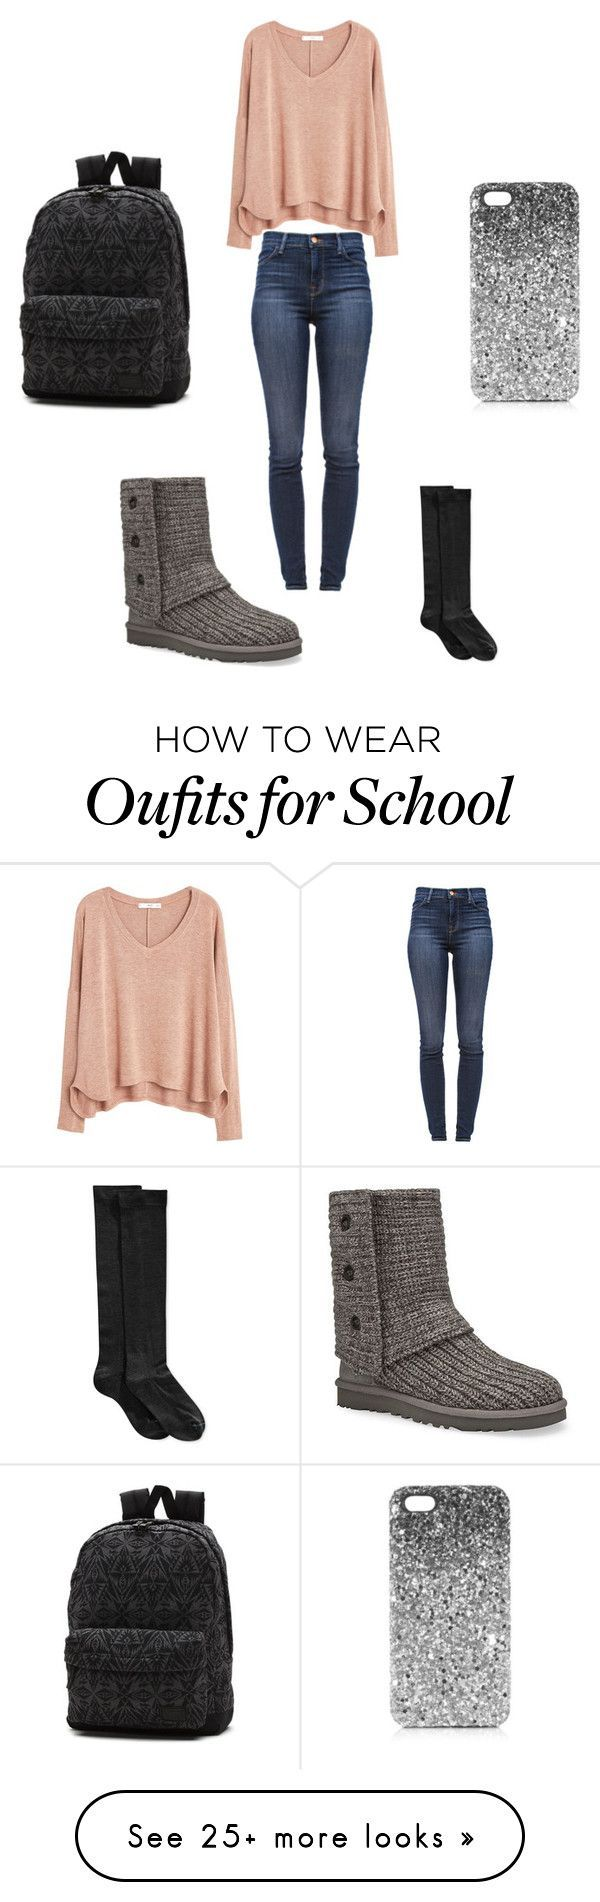 """School."" by autumn-hoppes on Polyvore featuring J Brand, MANGO, UGG Australia, Hue, Vans and Topshop"